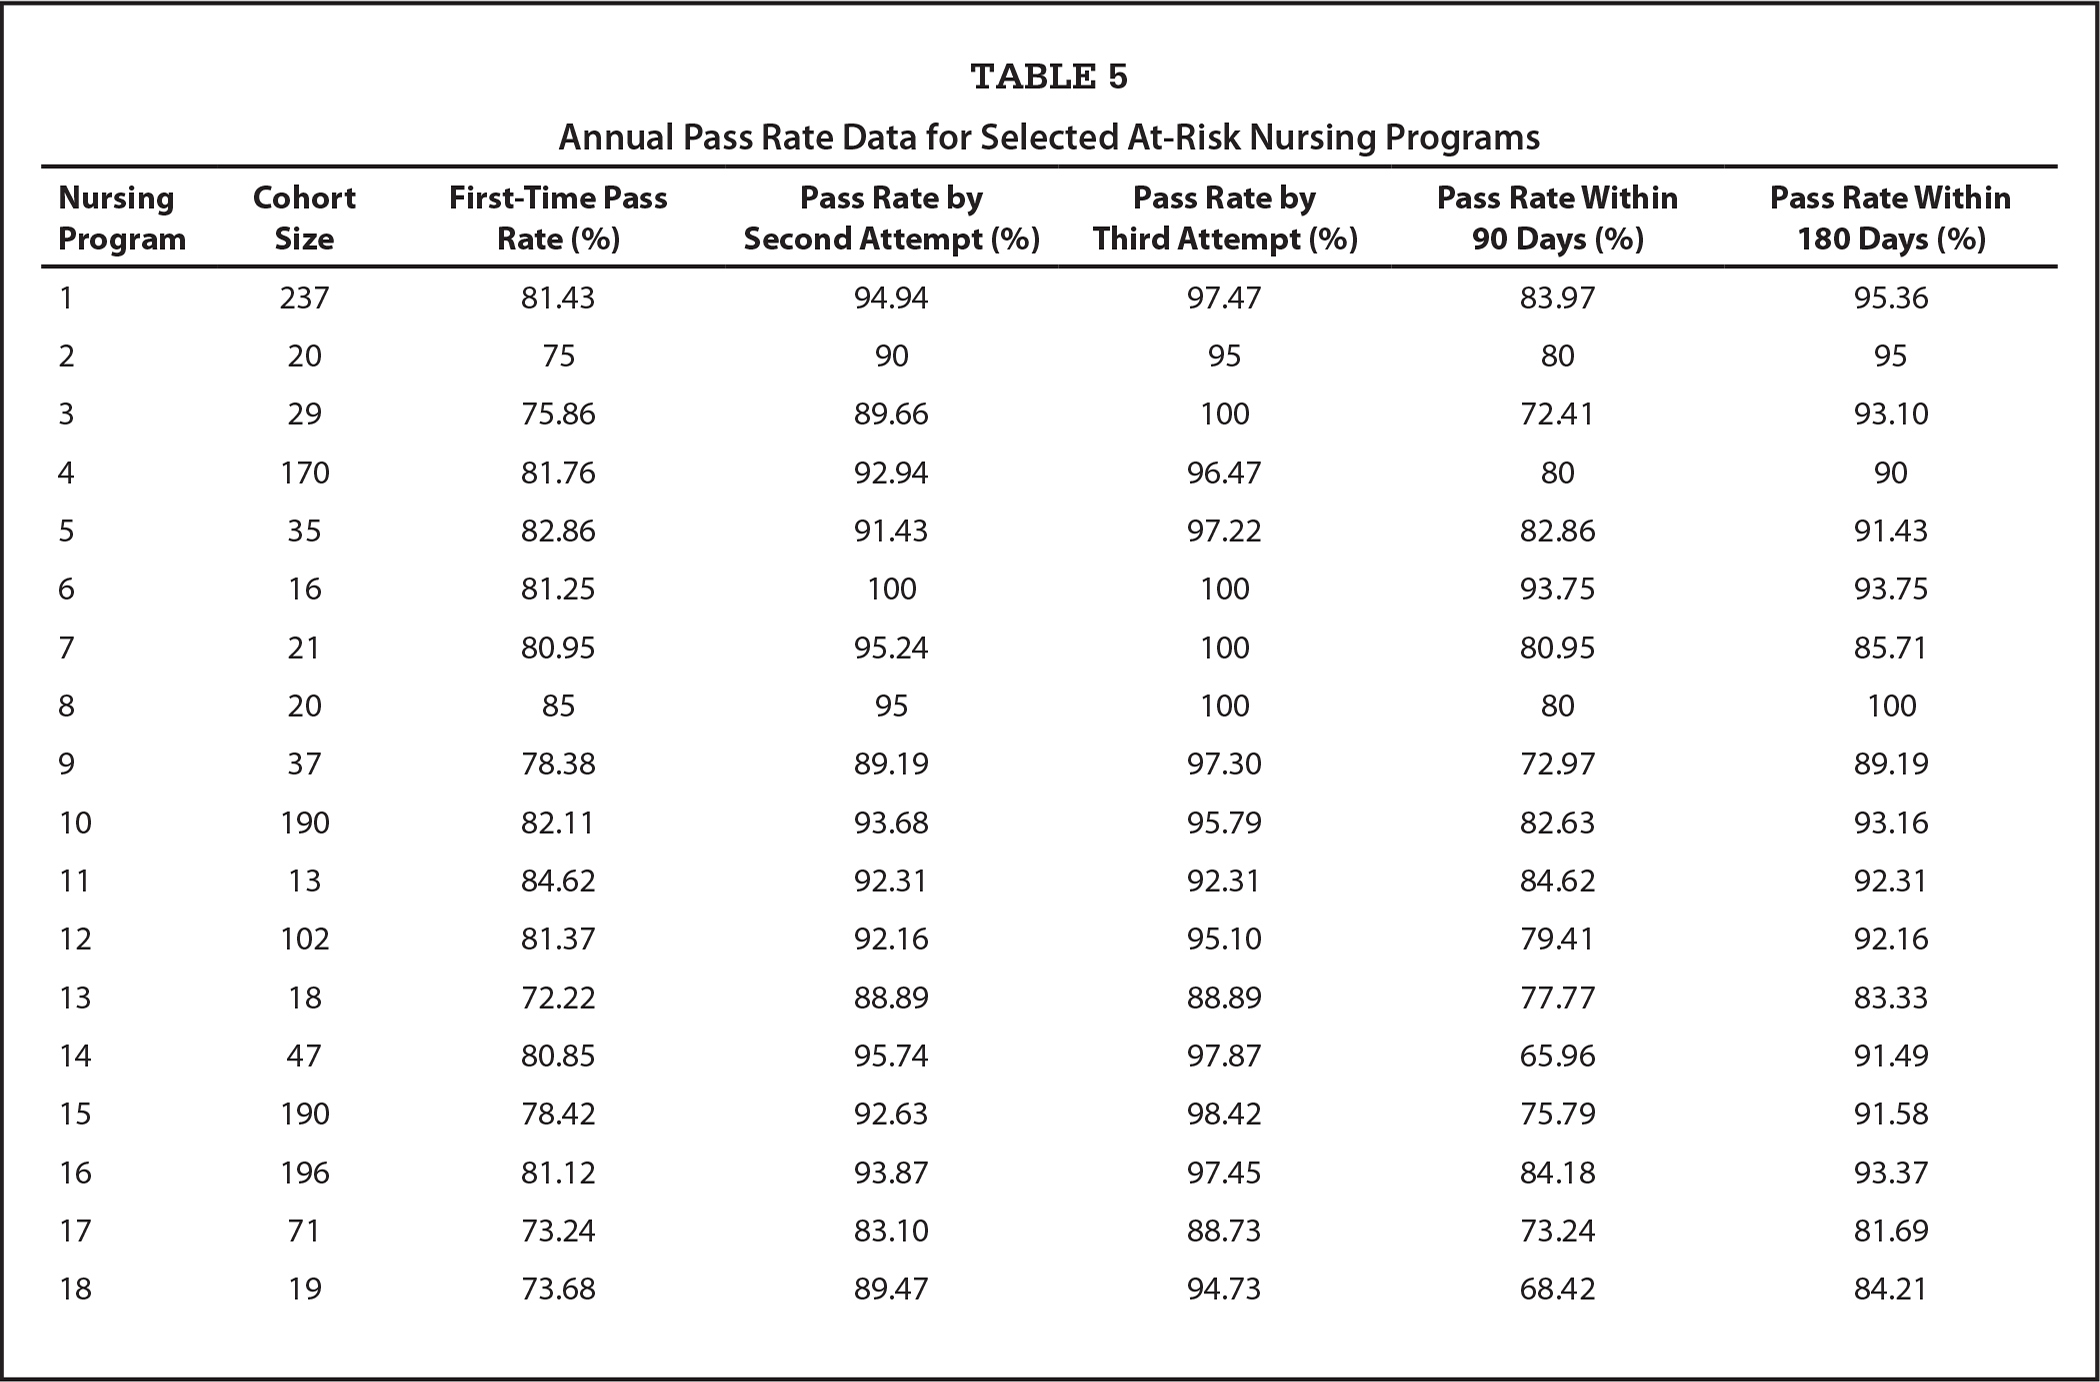 Annual Pass Rate Data for Selected At-Risk Nursing Programs